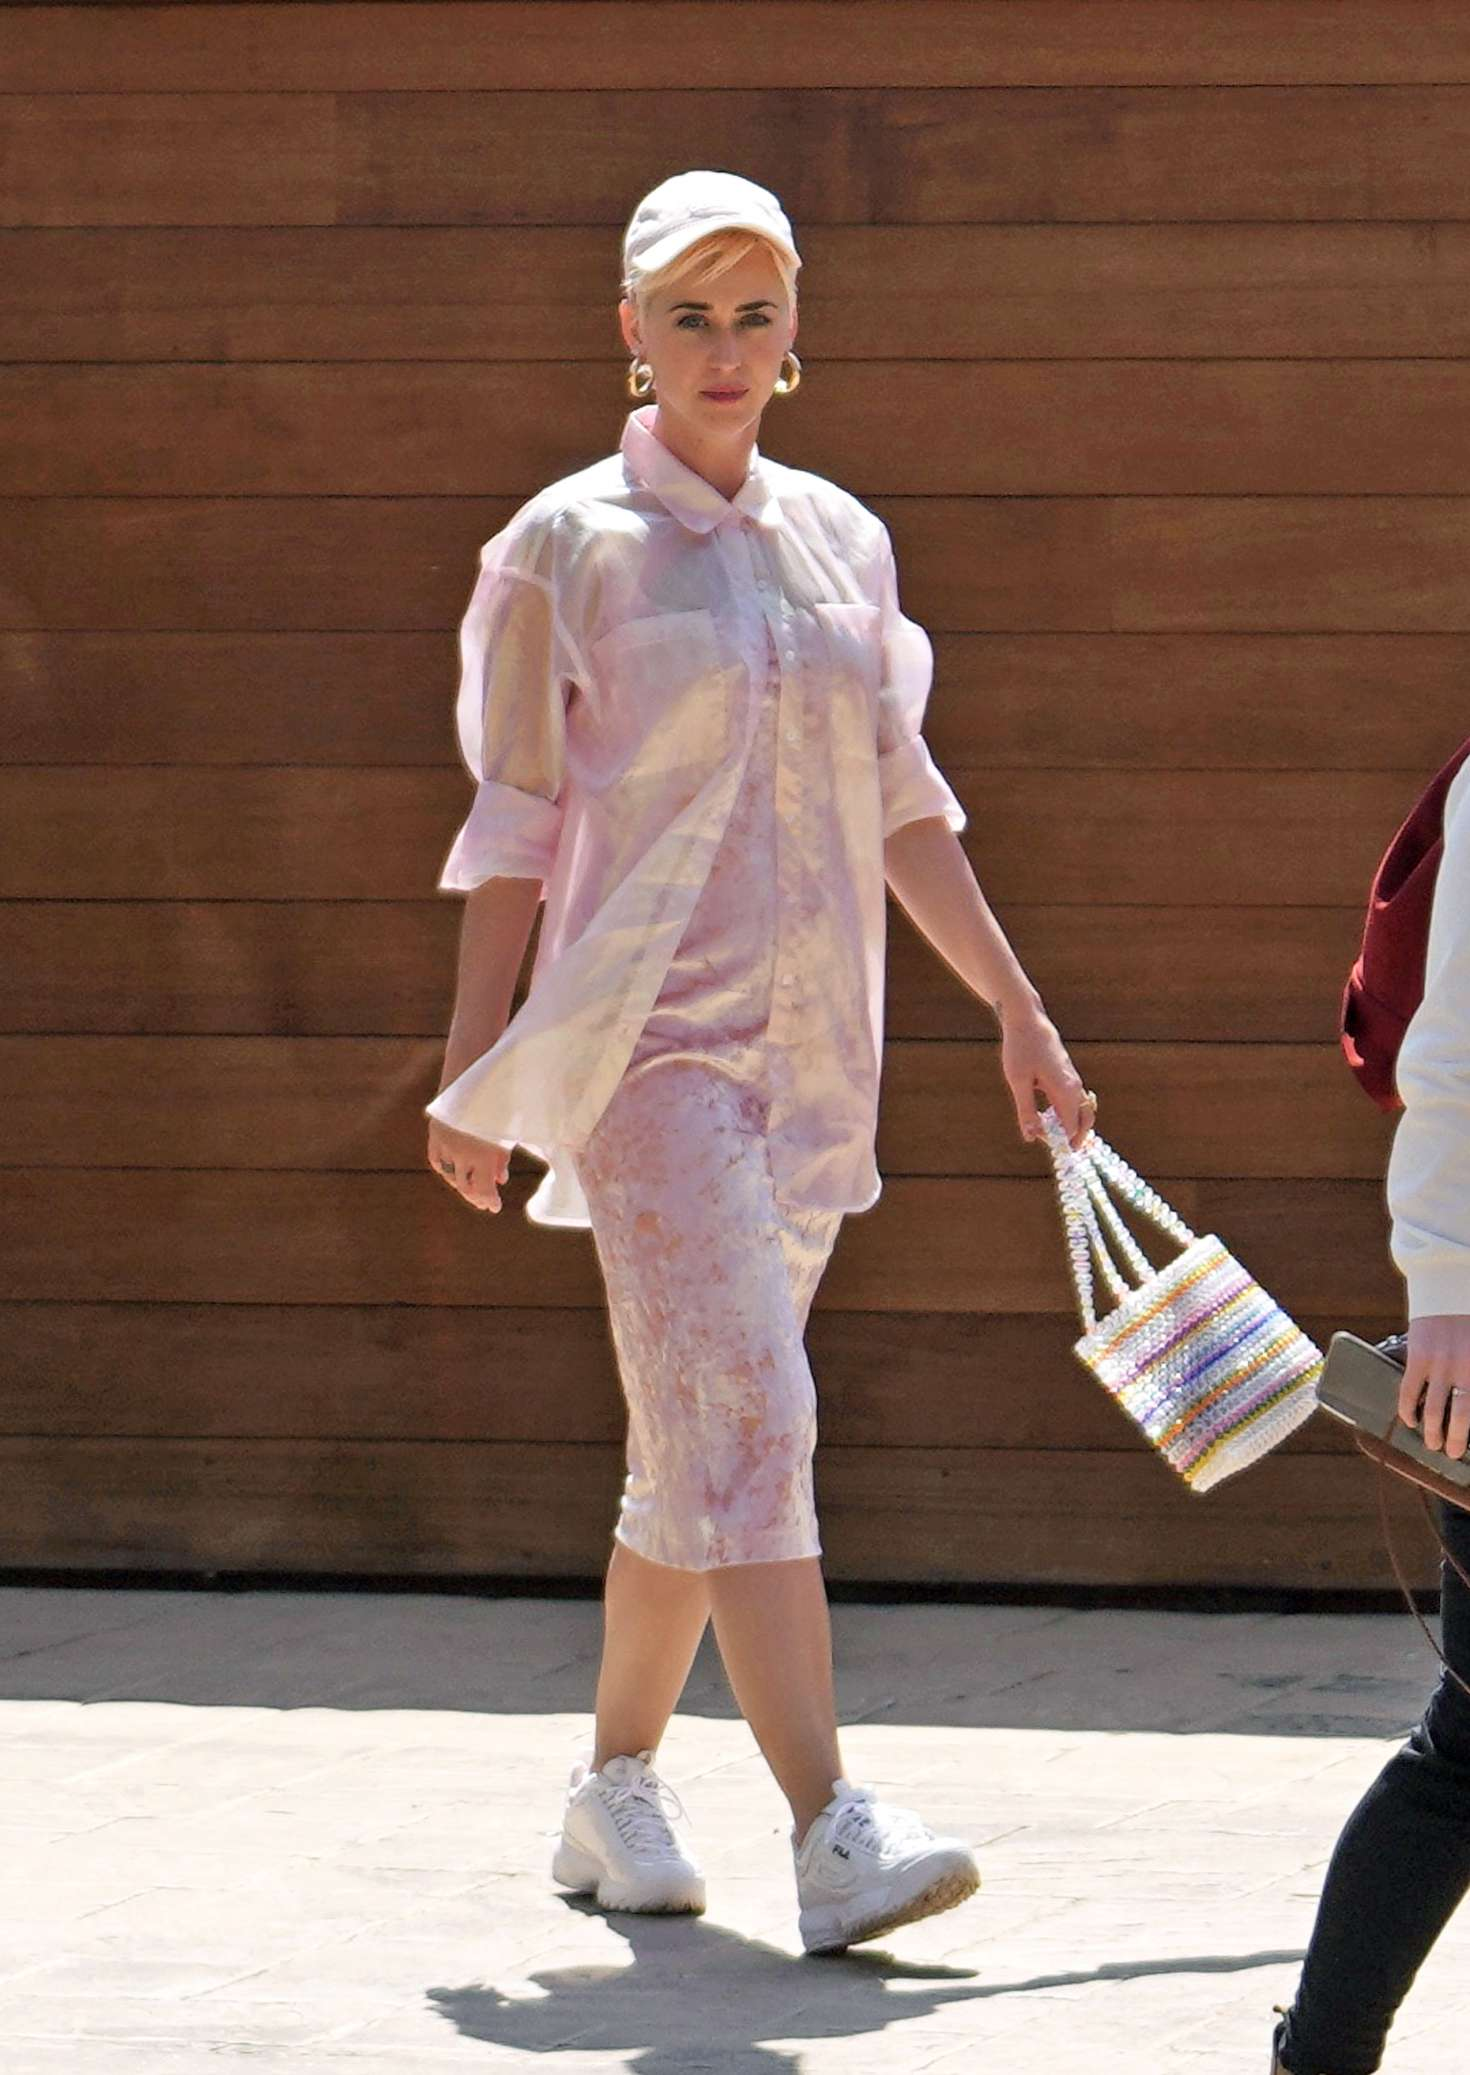 Katy Perry 2019 : Katy Perry: Attending church service -10